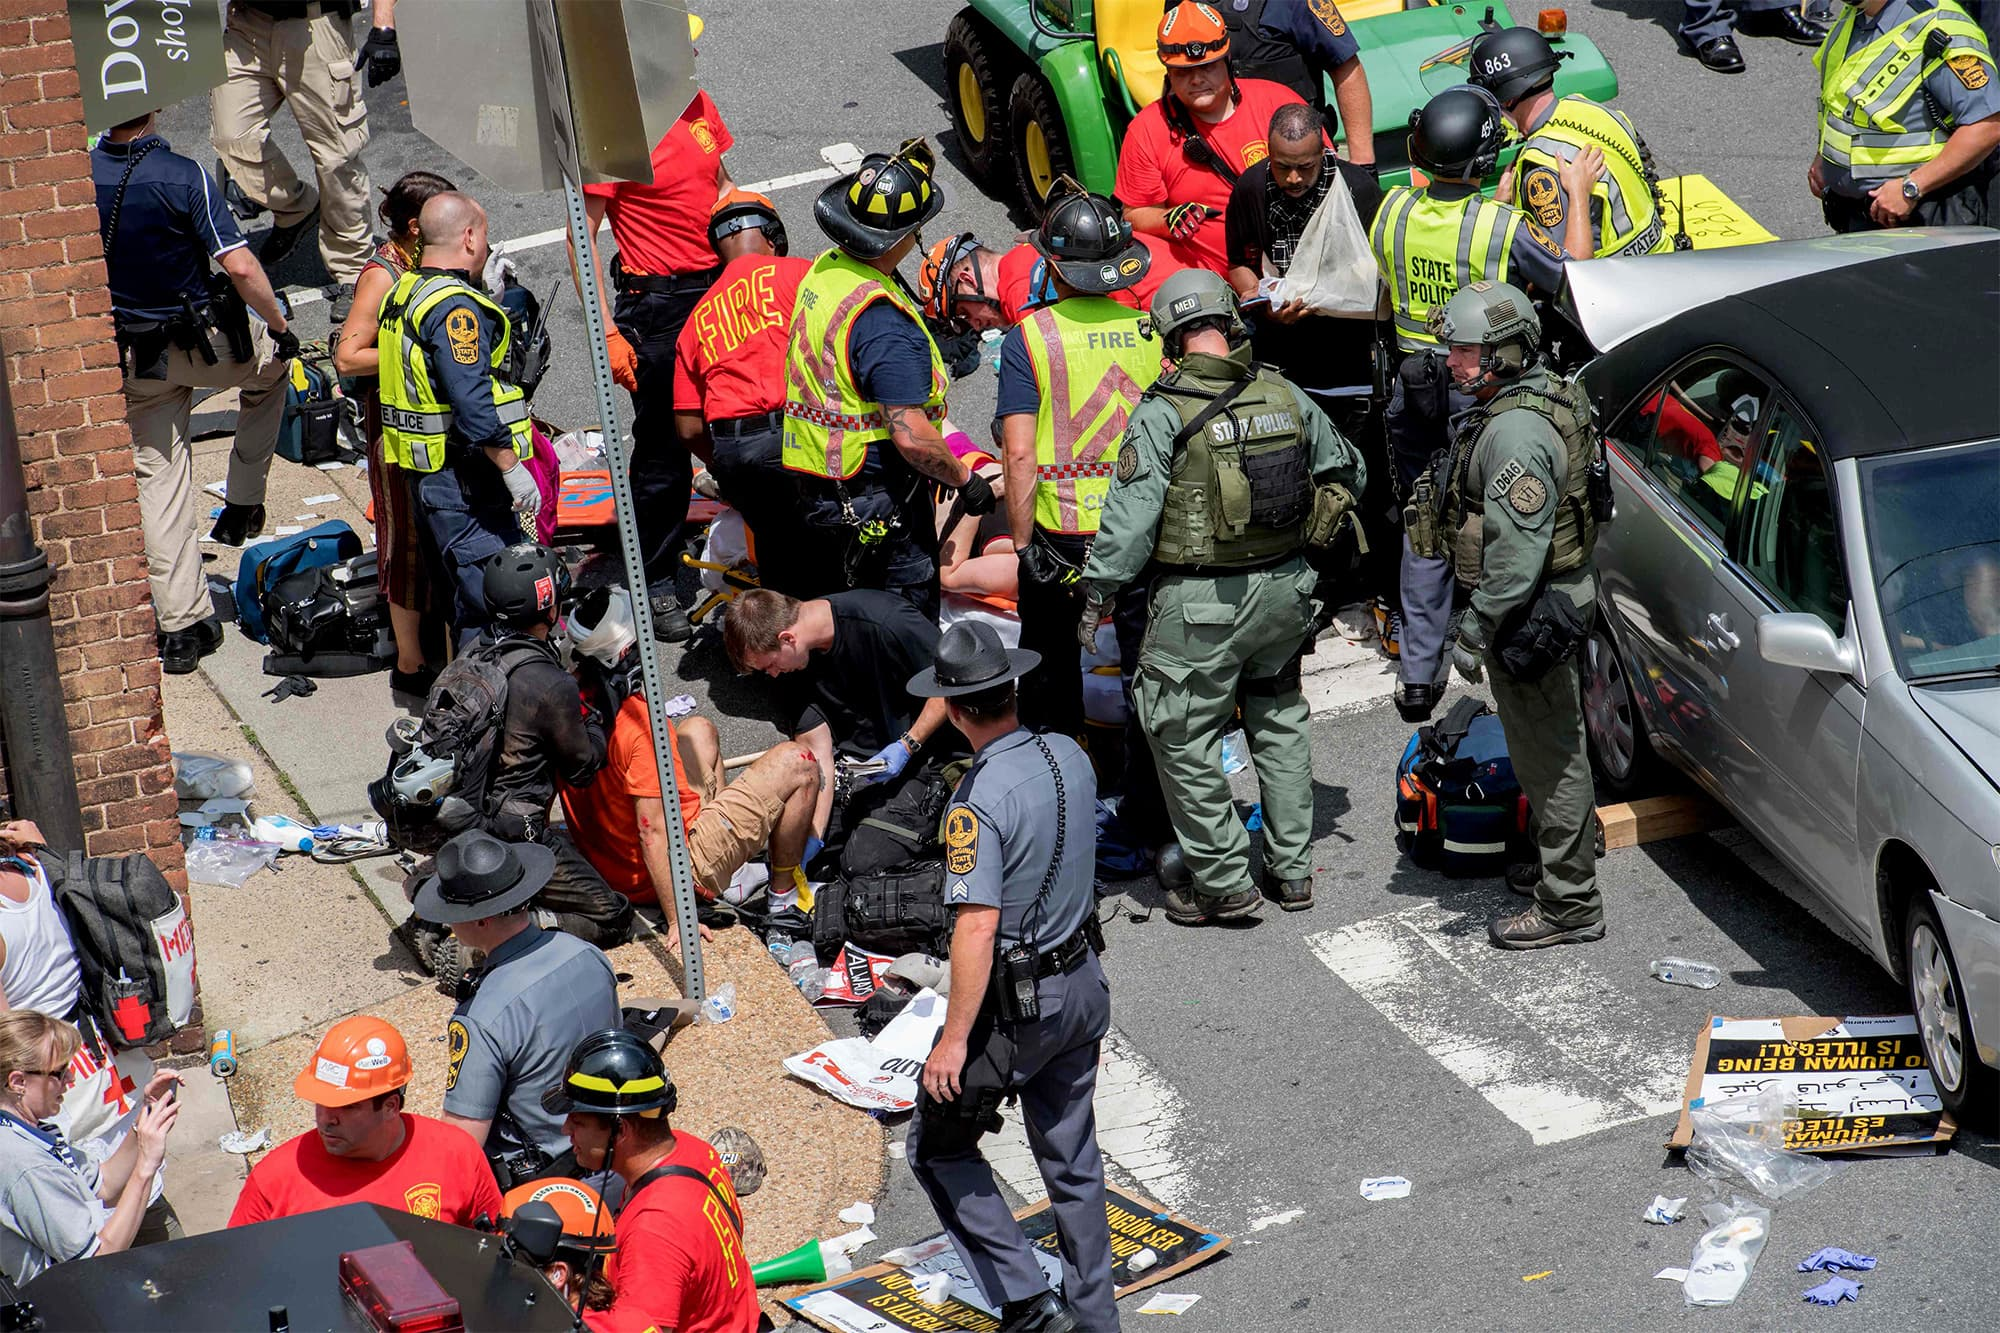 People receive first-aid after a car accident ran into a crowd of protesters in Charlottesville. ─ AFP